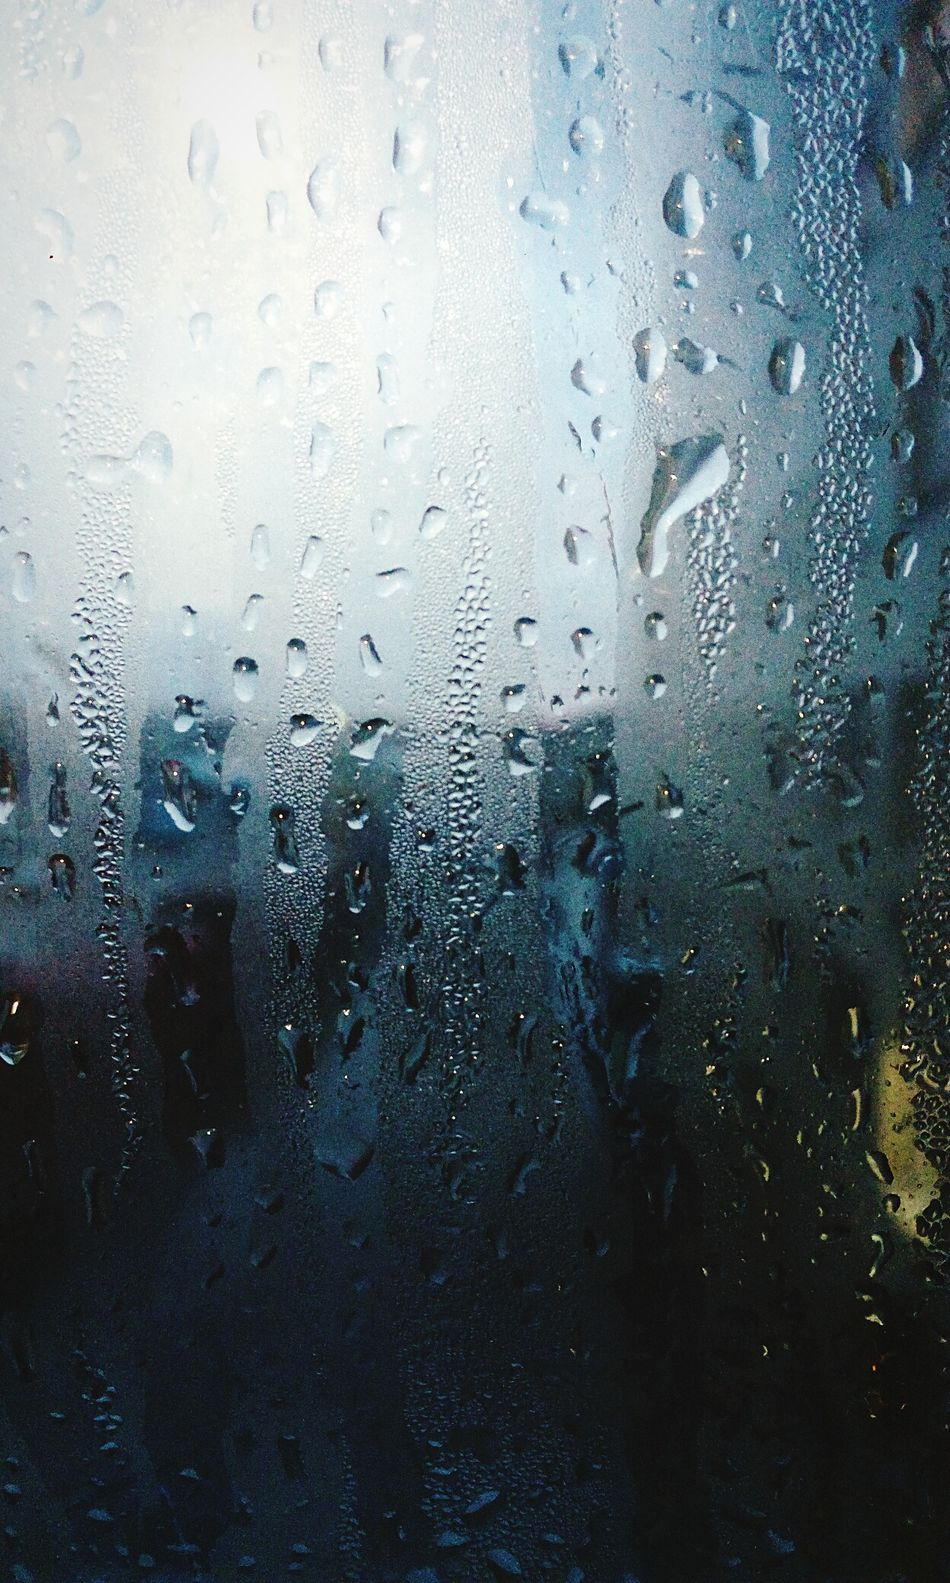 Nature Drop Window Backgrounds Condensation Full Frame Wet Indoors  Water RainDrop Close-up Frosted Glass No People Day